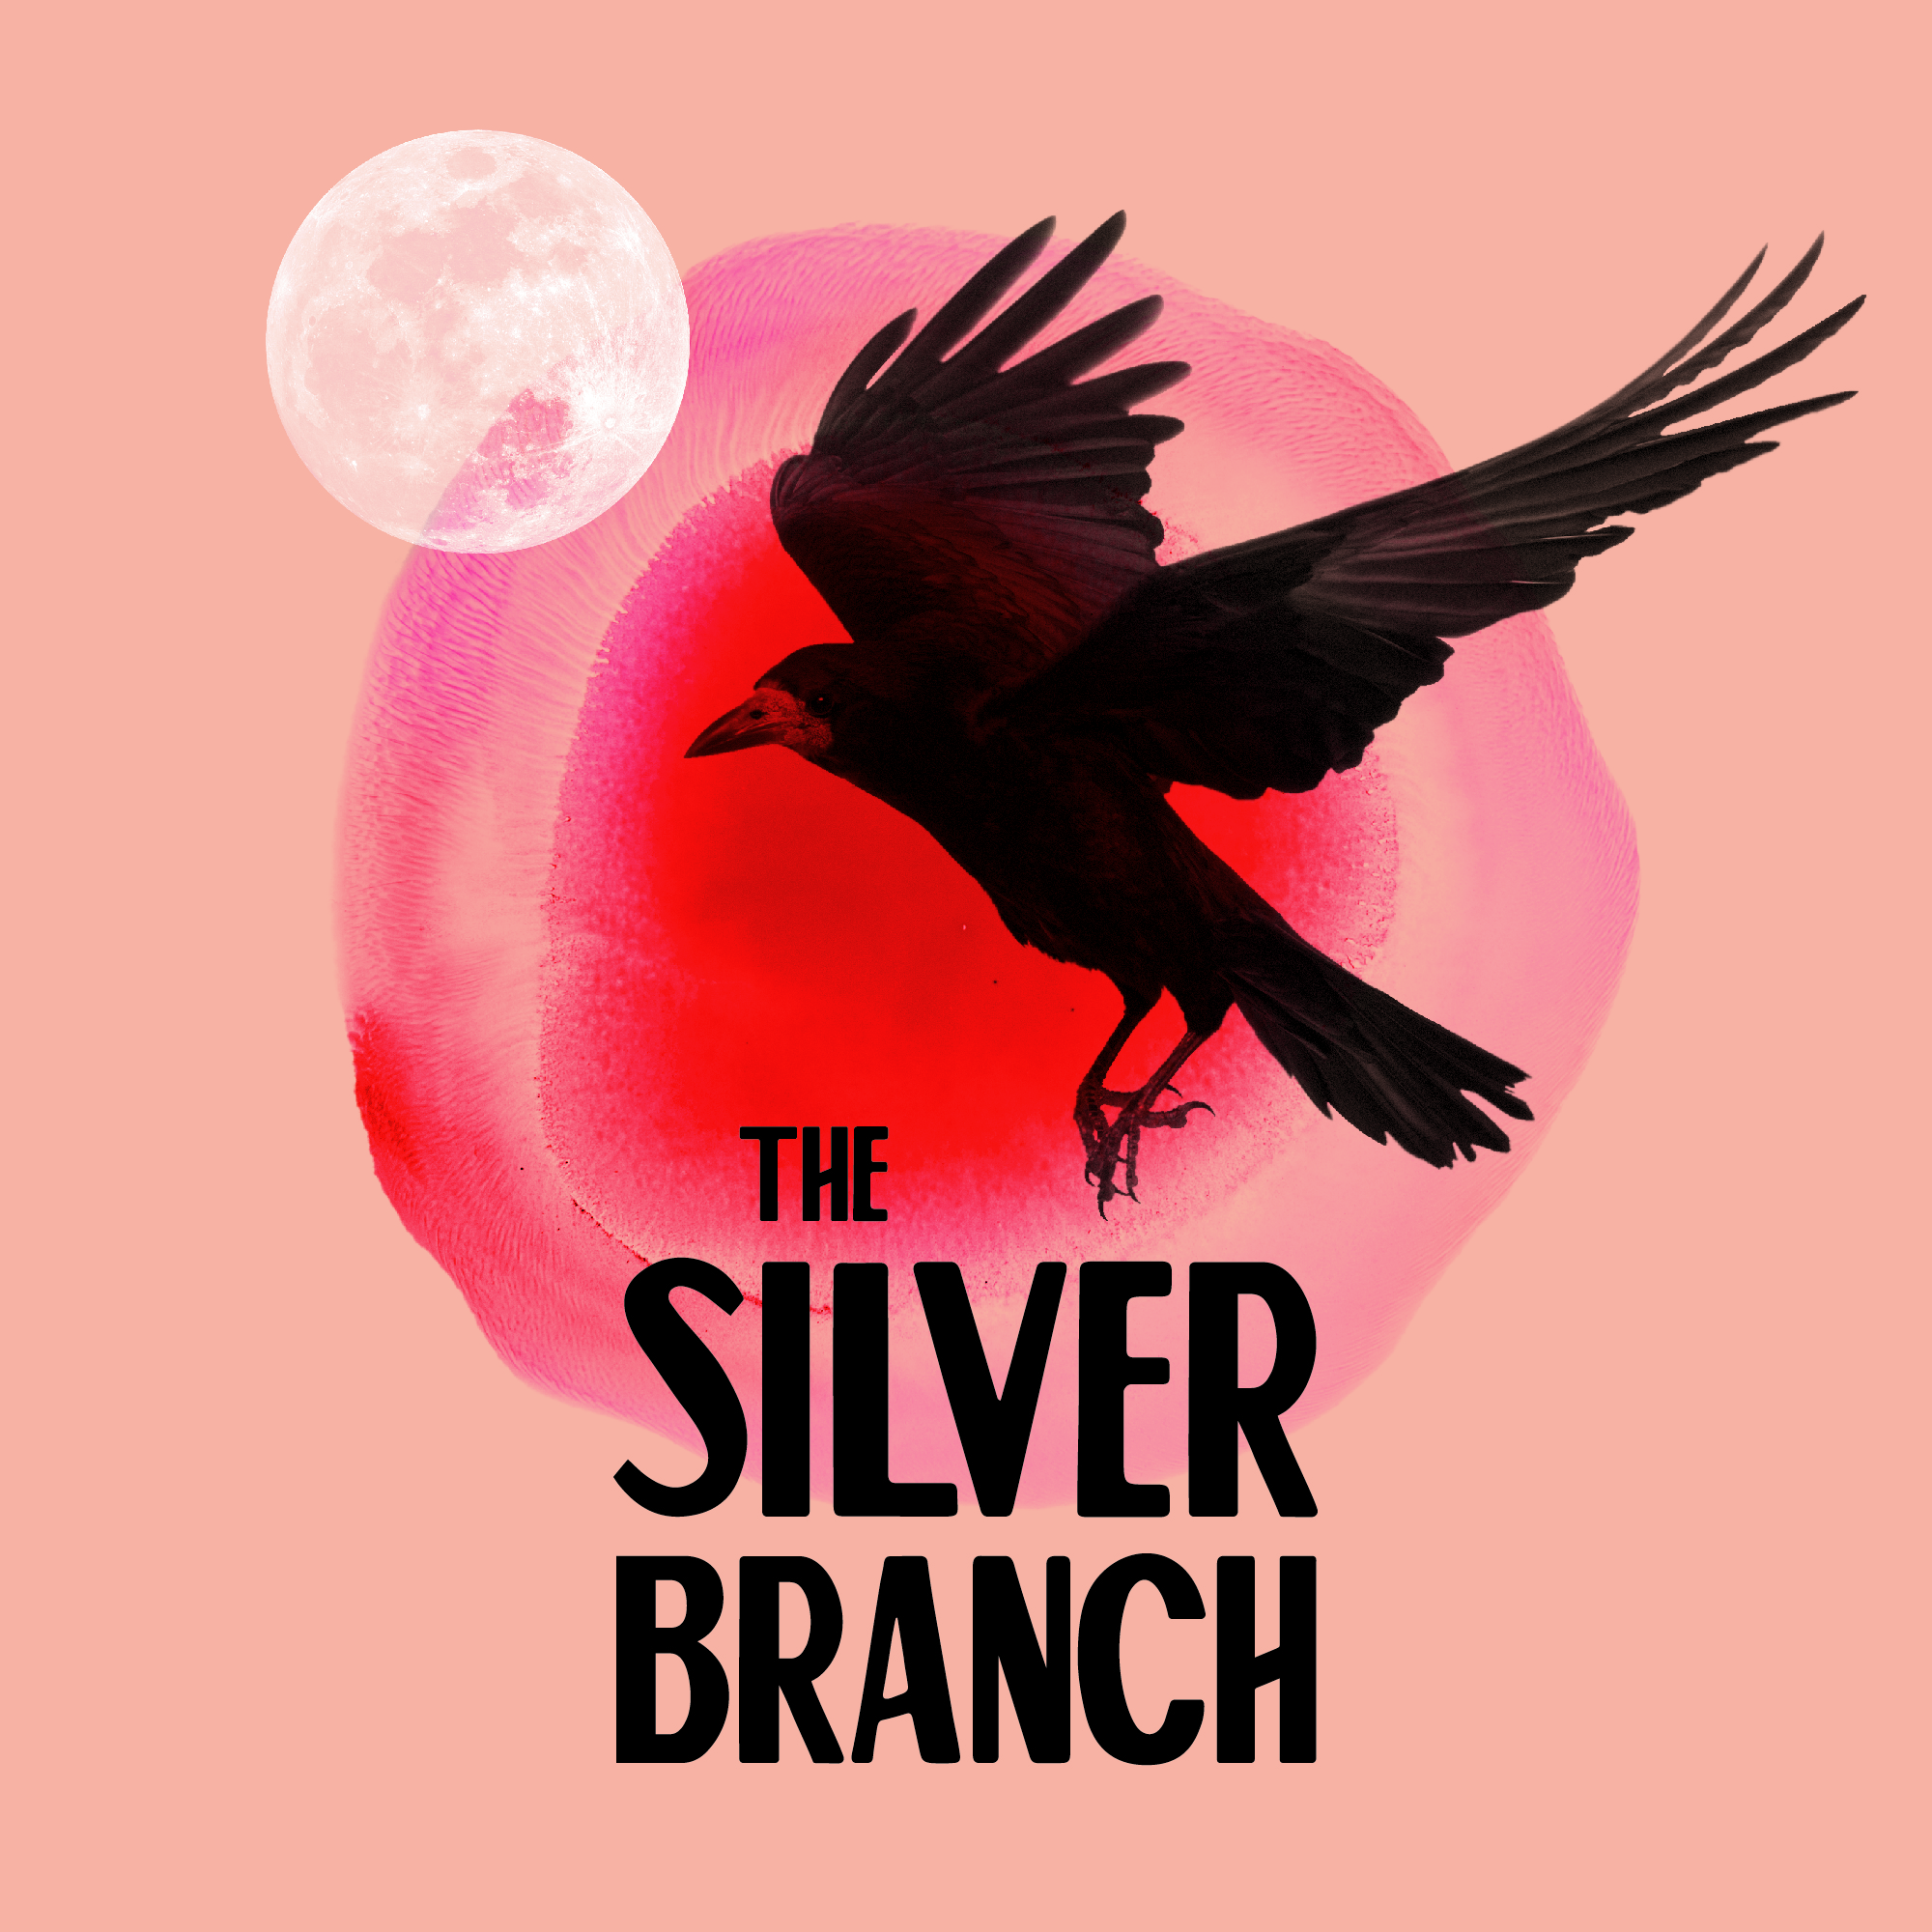 In 2018 DANI was an awardee of the Help Musicians Fusion Fund. The result of this funding was 'The Silver Branch'. DANI wrote the story of The Silver Branch, which explored the contemporary debate on reproductive rights in Northern Ireland through the lens of Celtic mythology, and worked with playwright Alice Malseed who developed the story for the stage. The piece was performed in December 2018 to a sold out audience in queer arts space  The343  and was supported by  Alliance4Choice . Poster design by Sarah Pannasch.